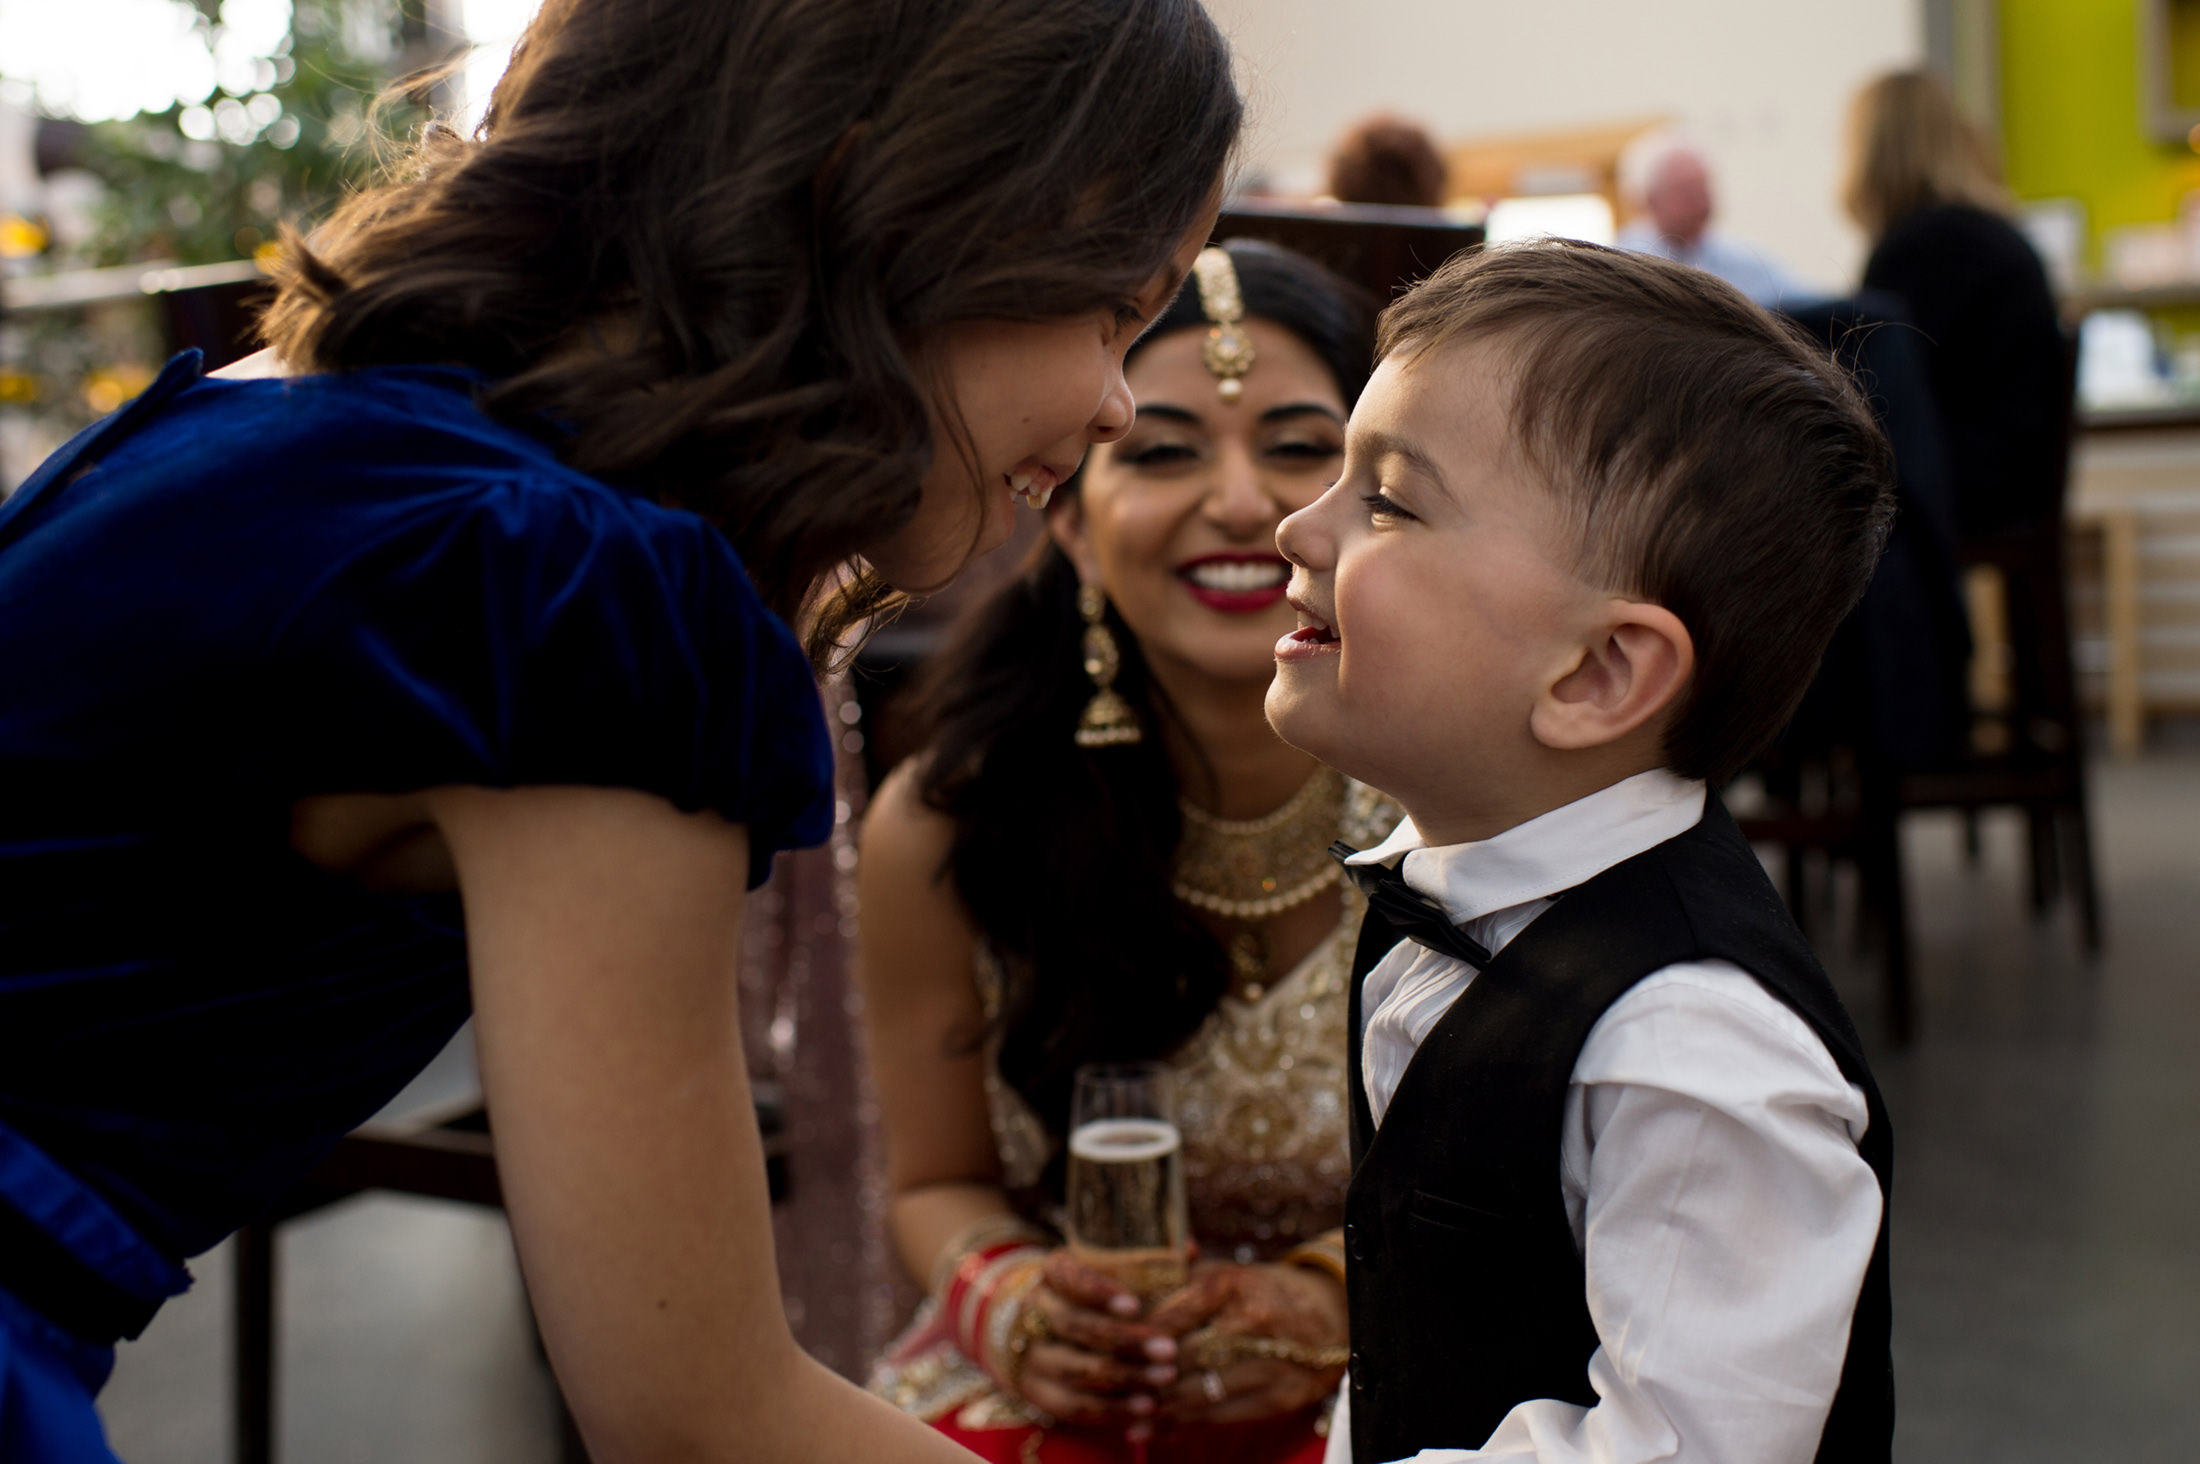 Edmonton_wedding_photographers_enjoy_center_wedding_Kiran_faisal_33.jpg